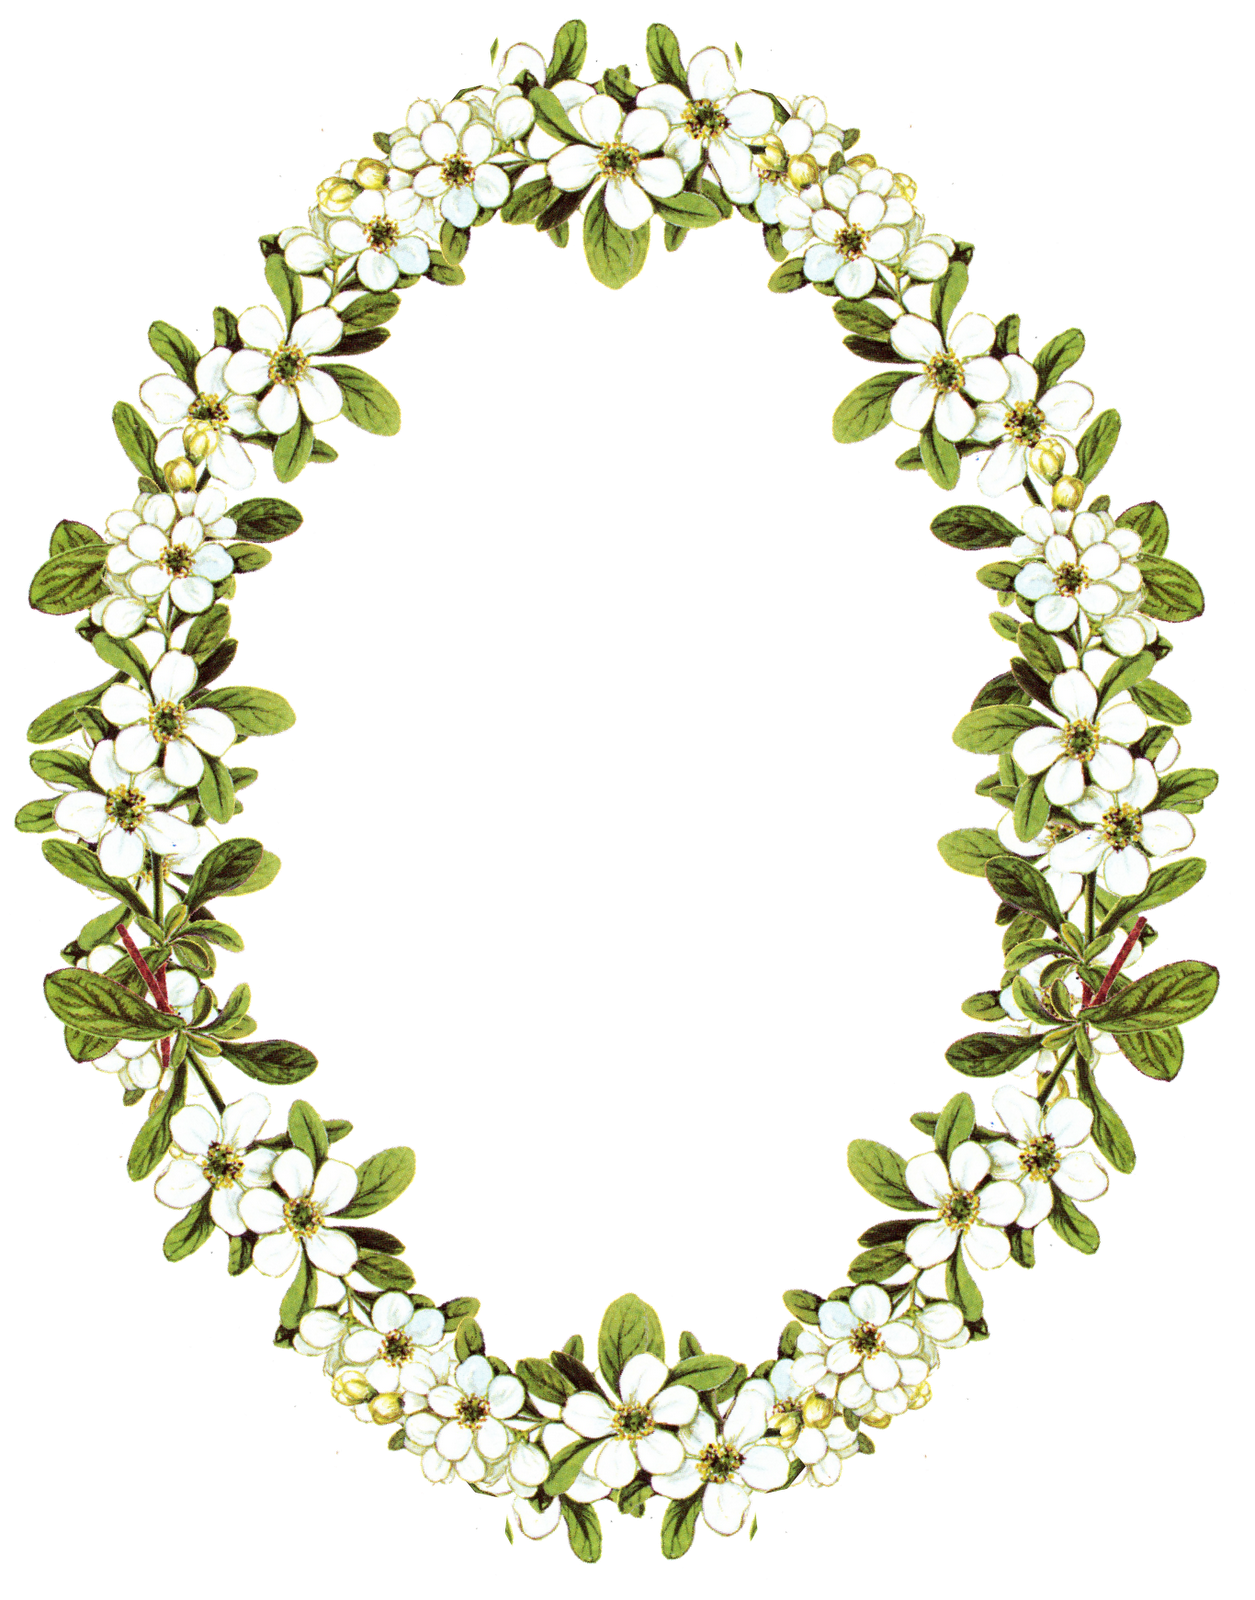 Flower Frame Png - ClipArt Best